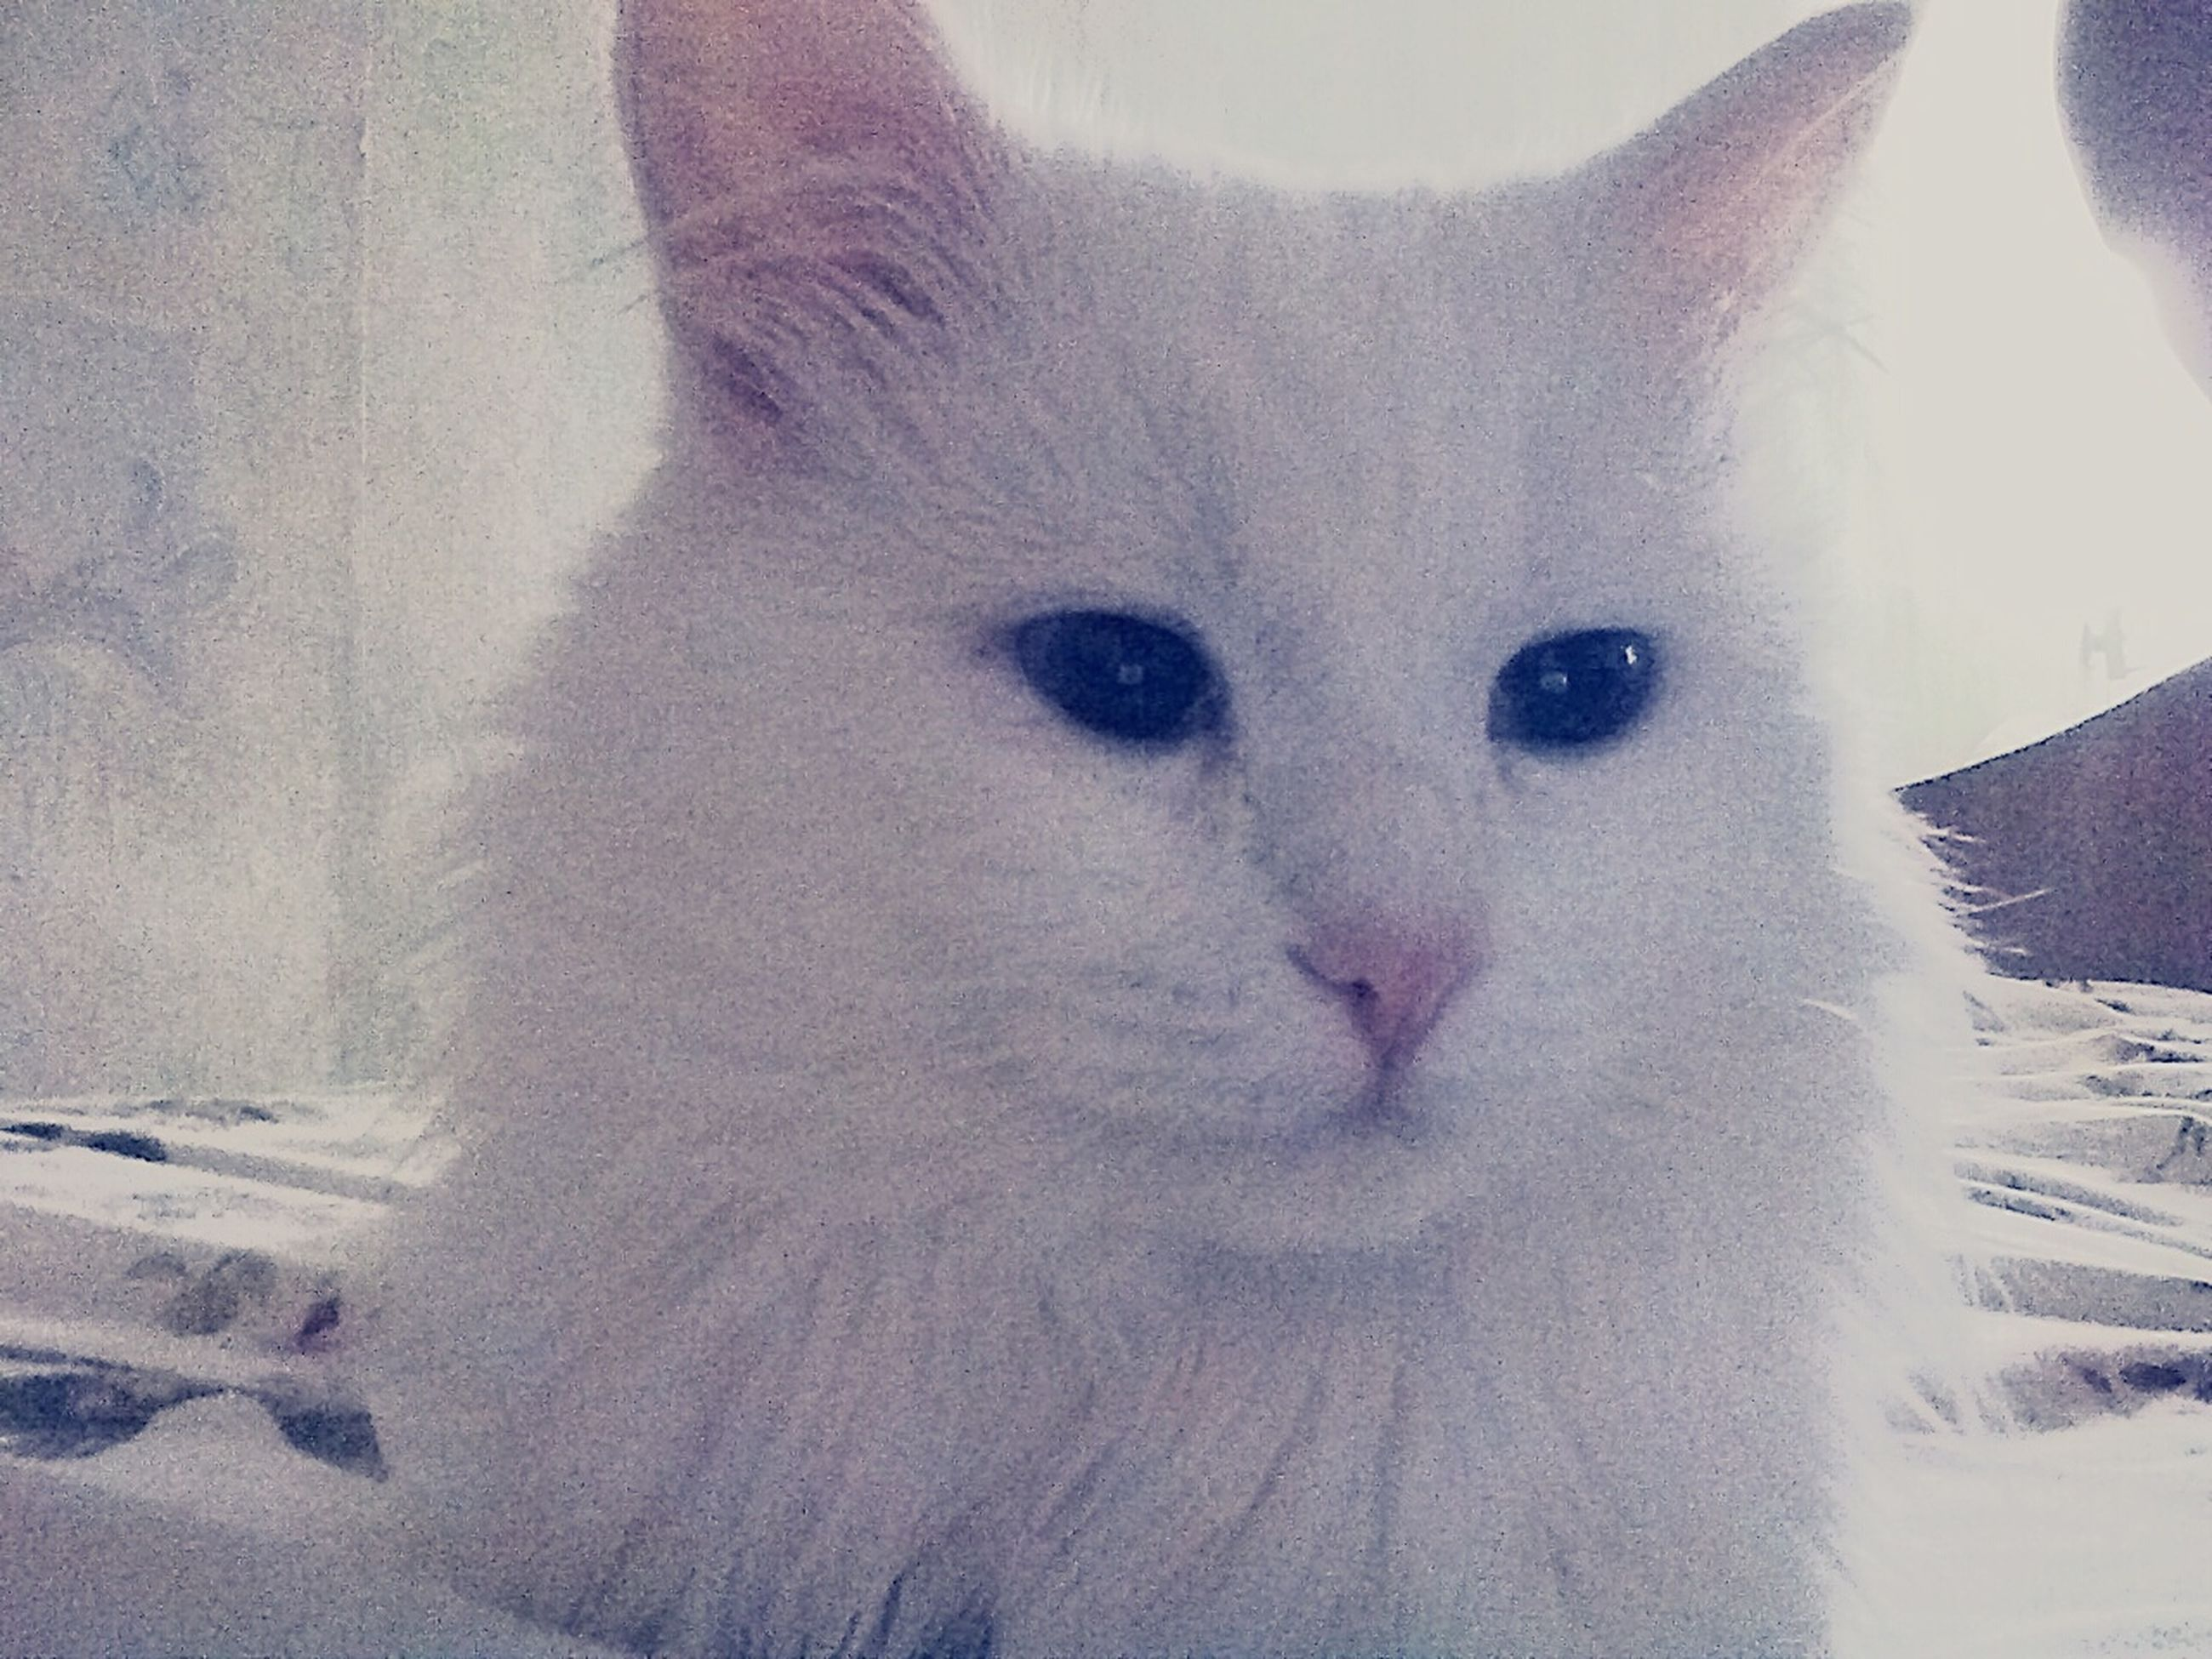 one animal, pets, domestic animals, animal themes, snow, cold temperature, winter, mammal, domestic cat, white color, cat, feline, season, close-up, portrait, looking at camera, weather, no people, white, covering